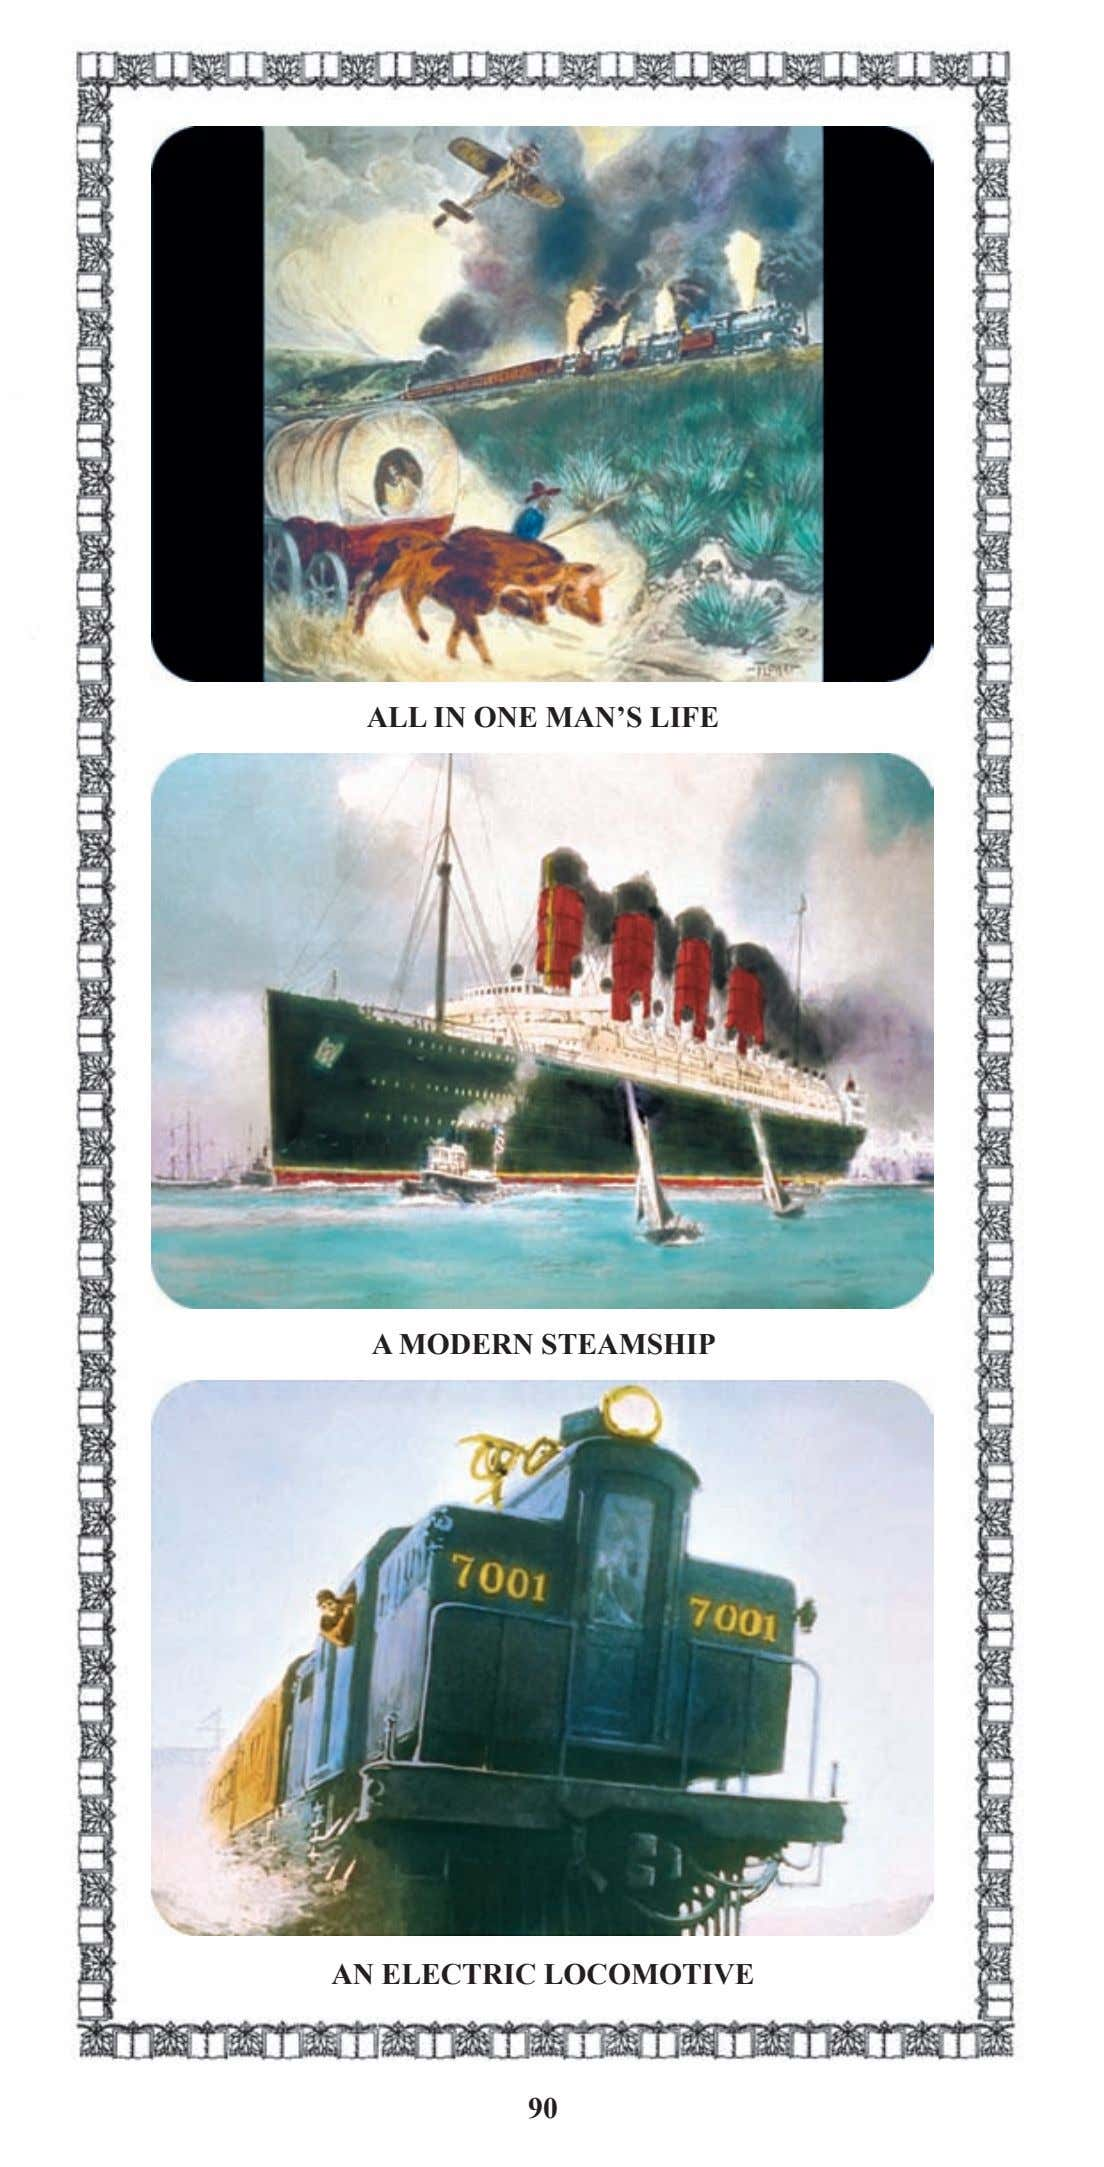 ALL IN ONE MAN'S LIFE A MODERN STEAMSHIP AN ELECTRIC LOCOMOTIVE 90